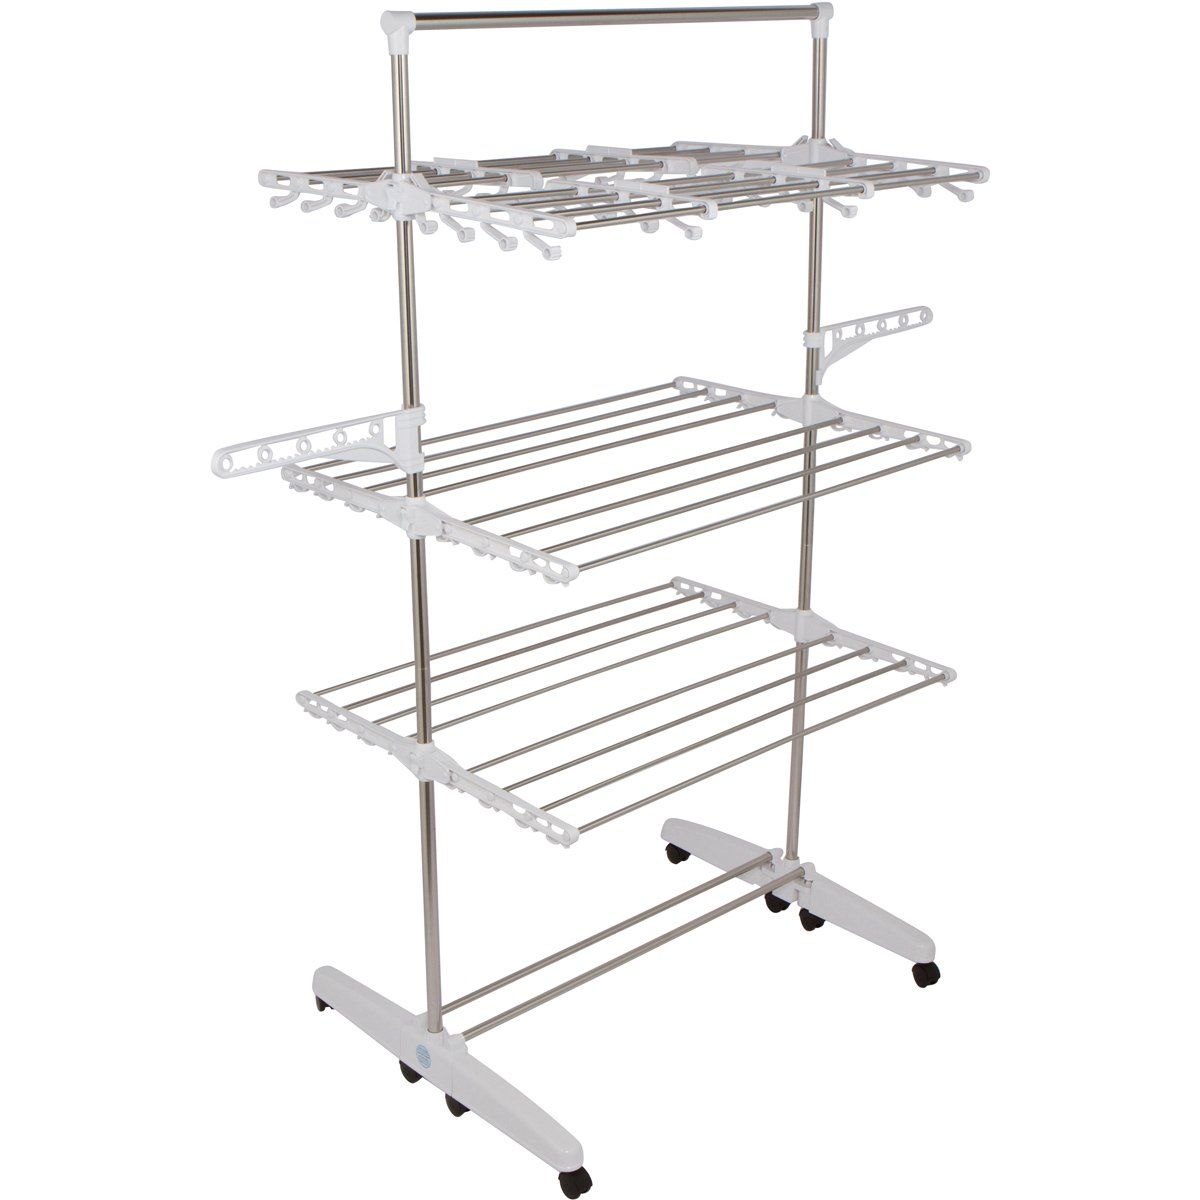 !iT Jeans High Capacity Premium Stainless Steel Clothes Drying Rack- 8 Wheels- Heavy Duty Large Size - Indoor & Outdoor